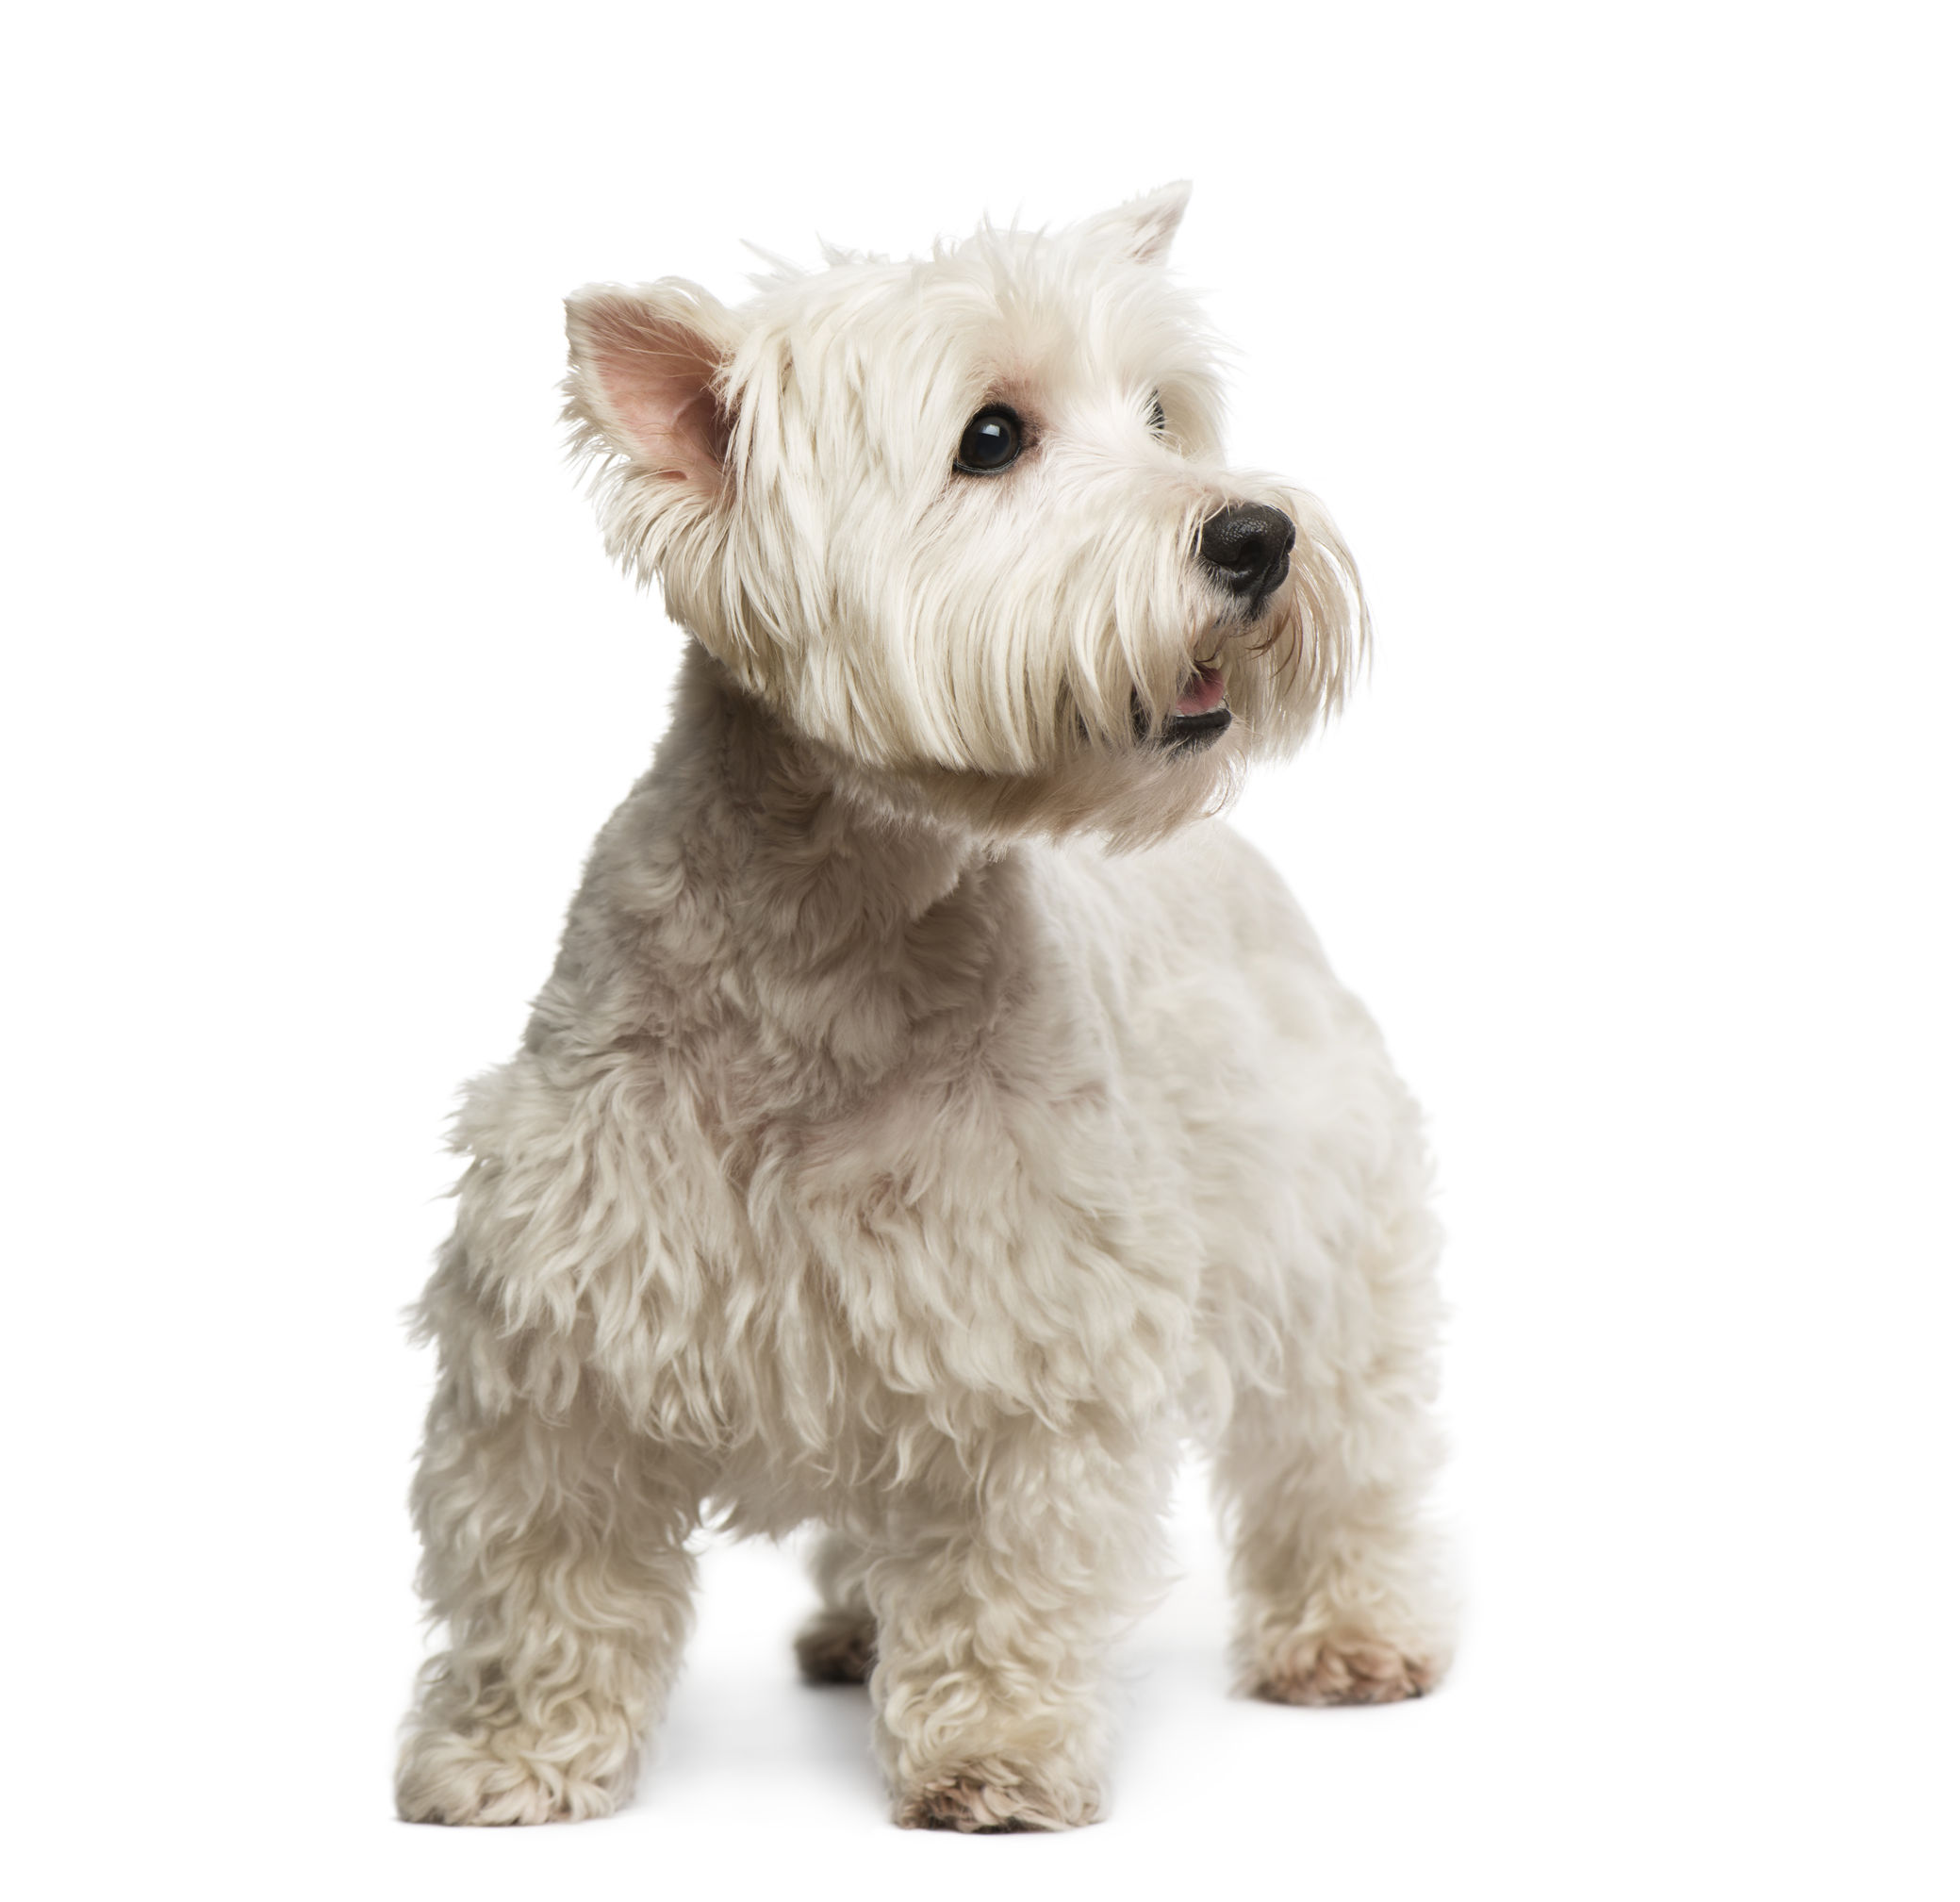 Dog Breeds From Yorkshire Terrier